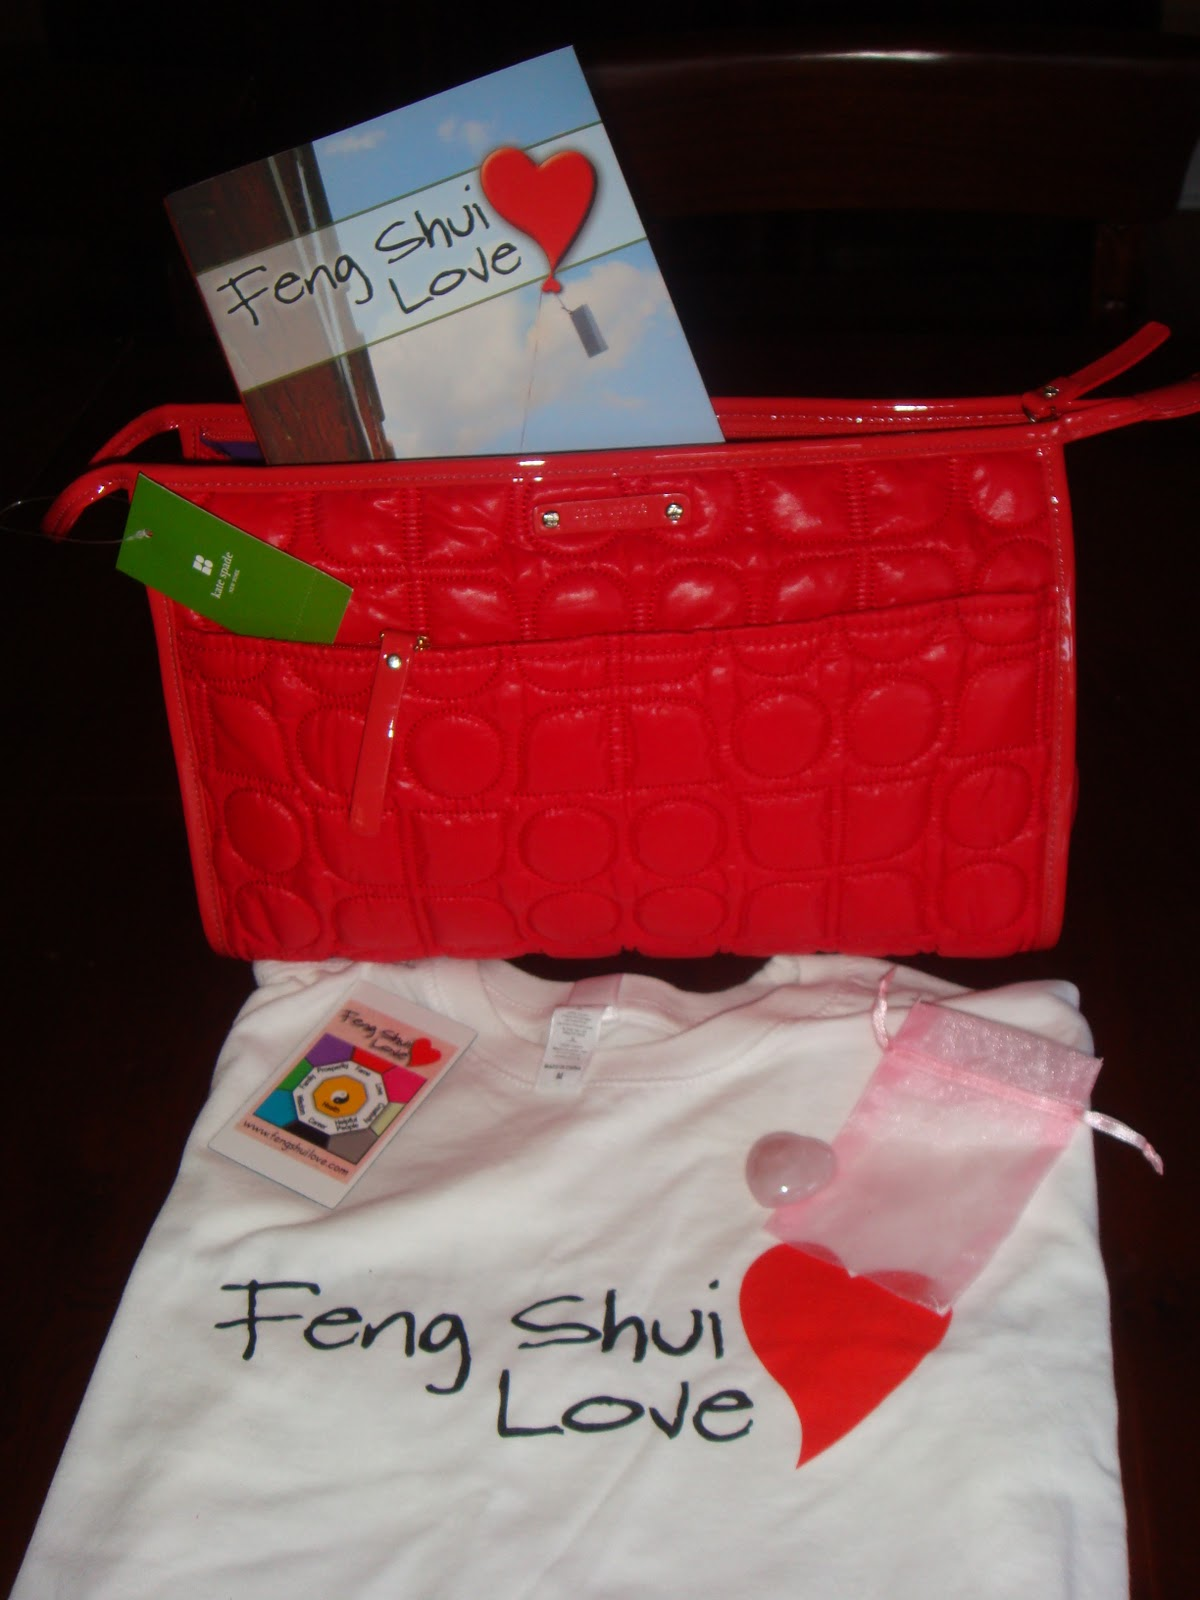 feng shui relationship and love